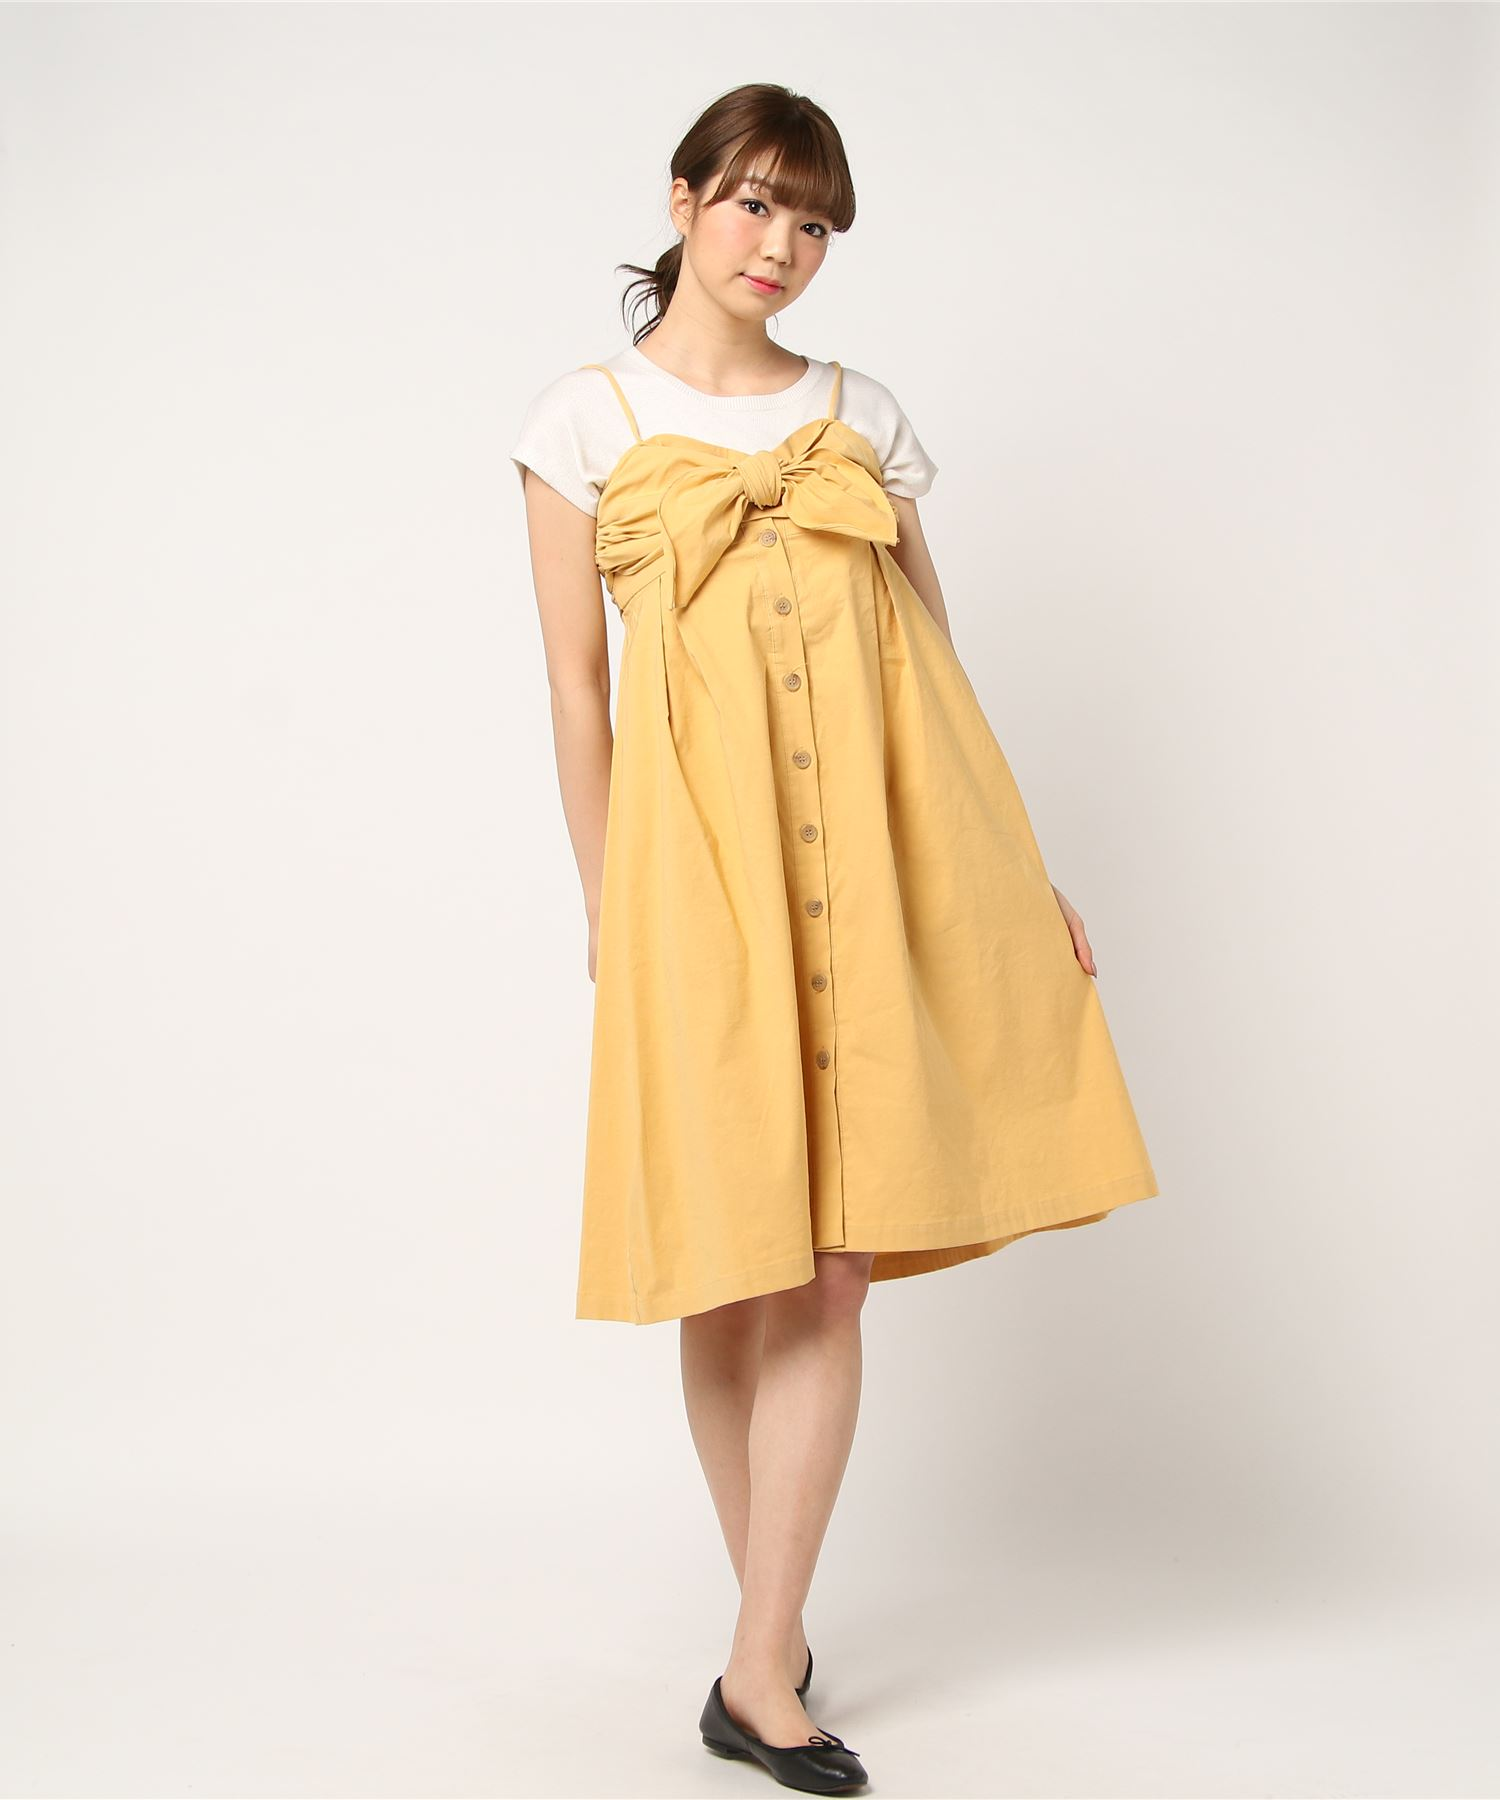 Sea New York シーニューヨーク / TIE FRONT CUTOUT DRESS